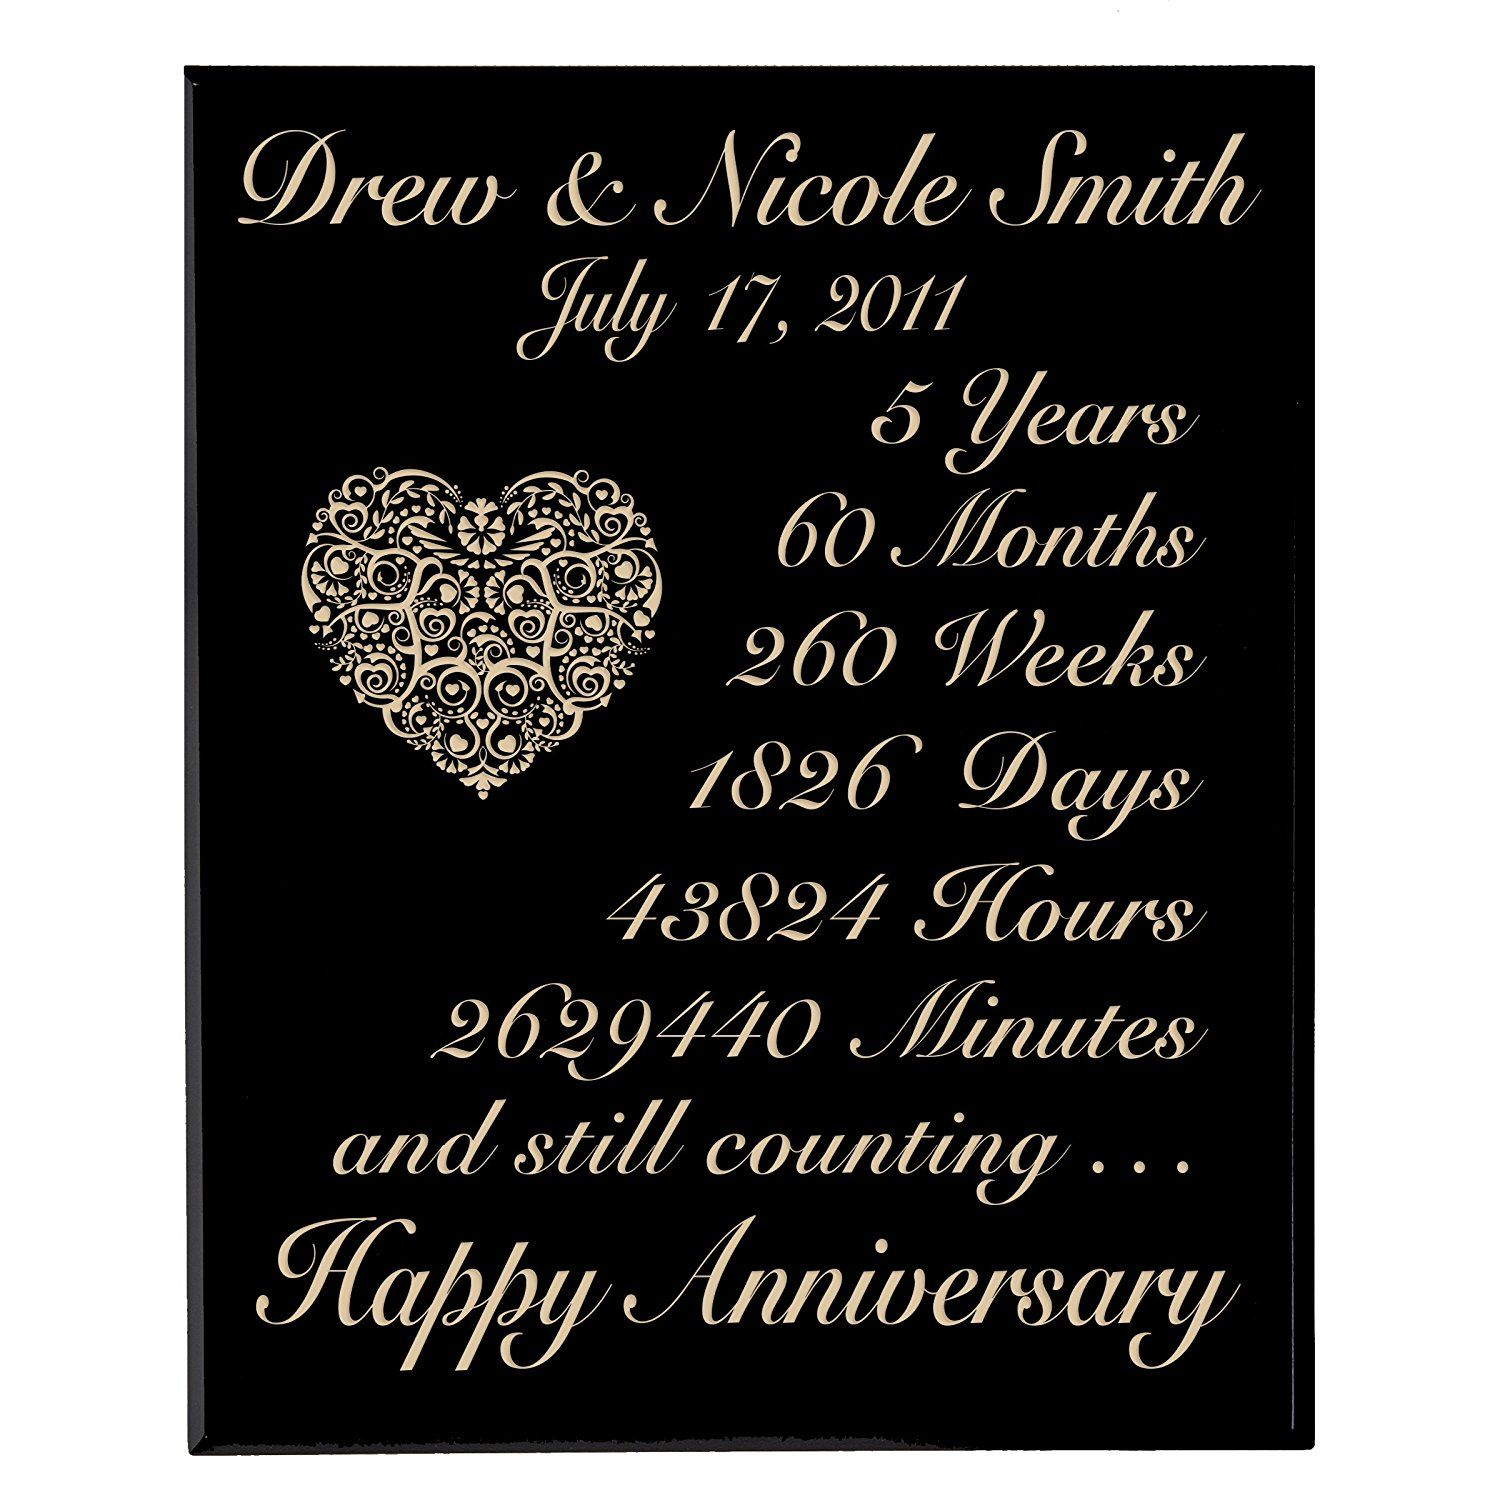 Personalized 5th Wedding Anniversary Wall Plaque Gifts for